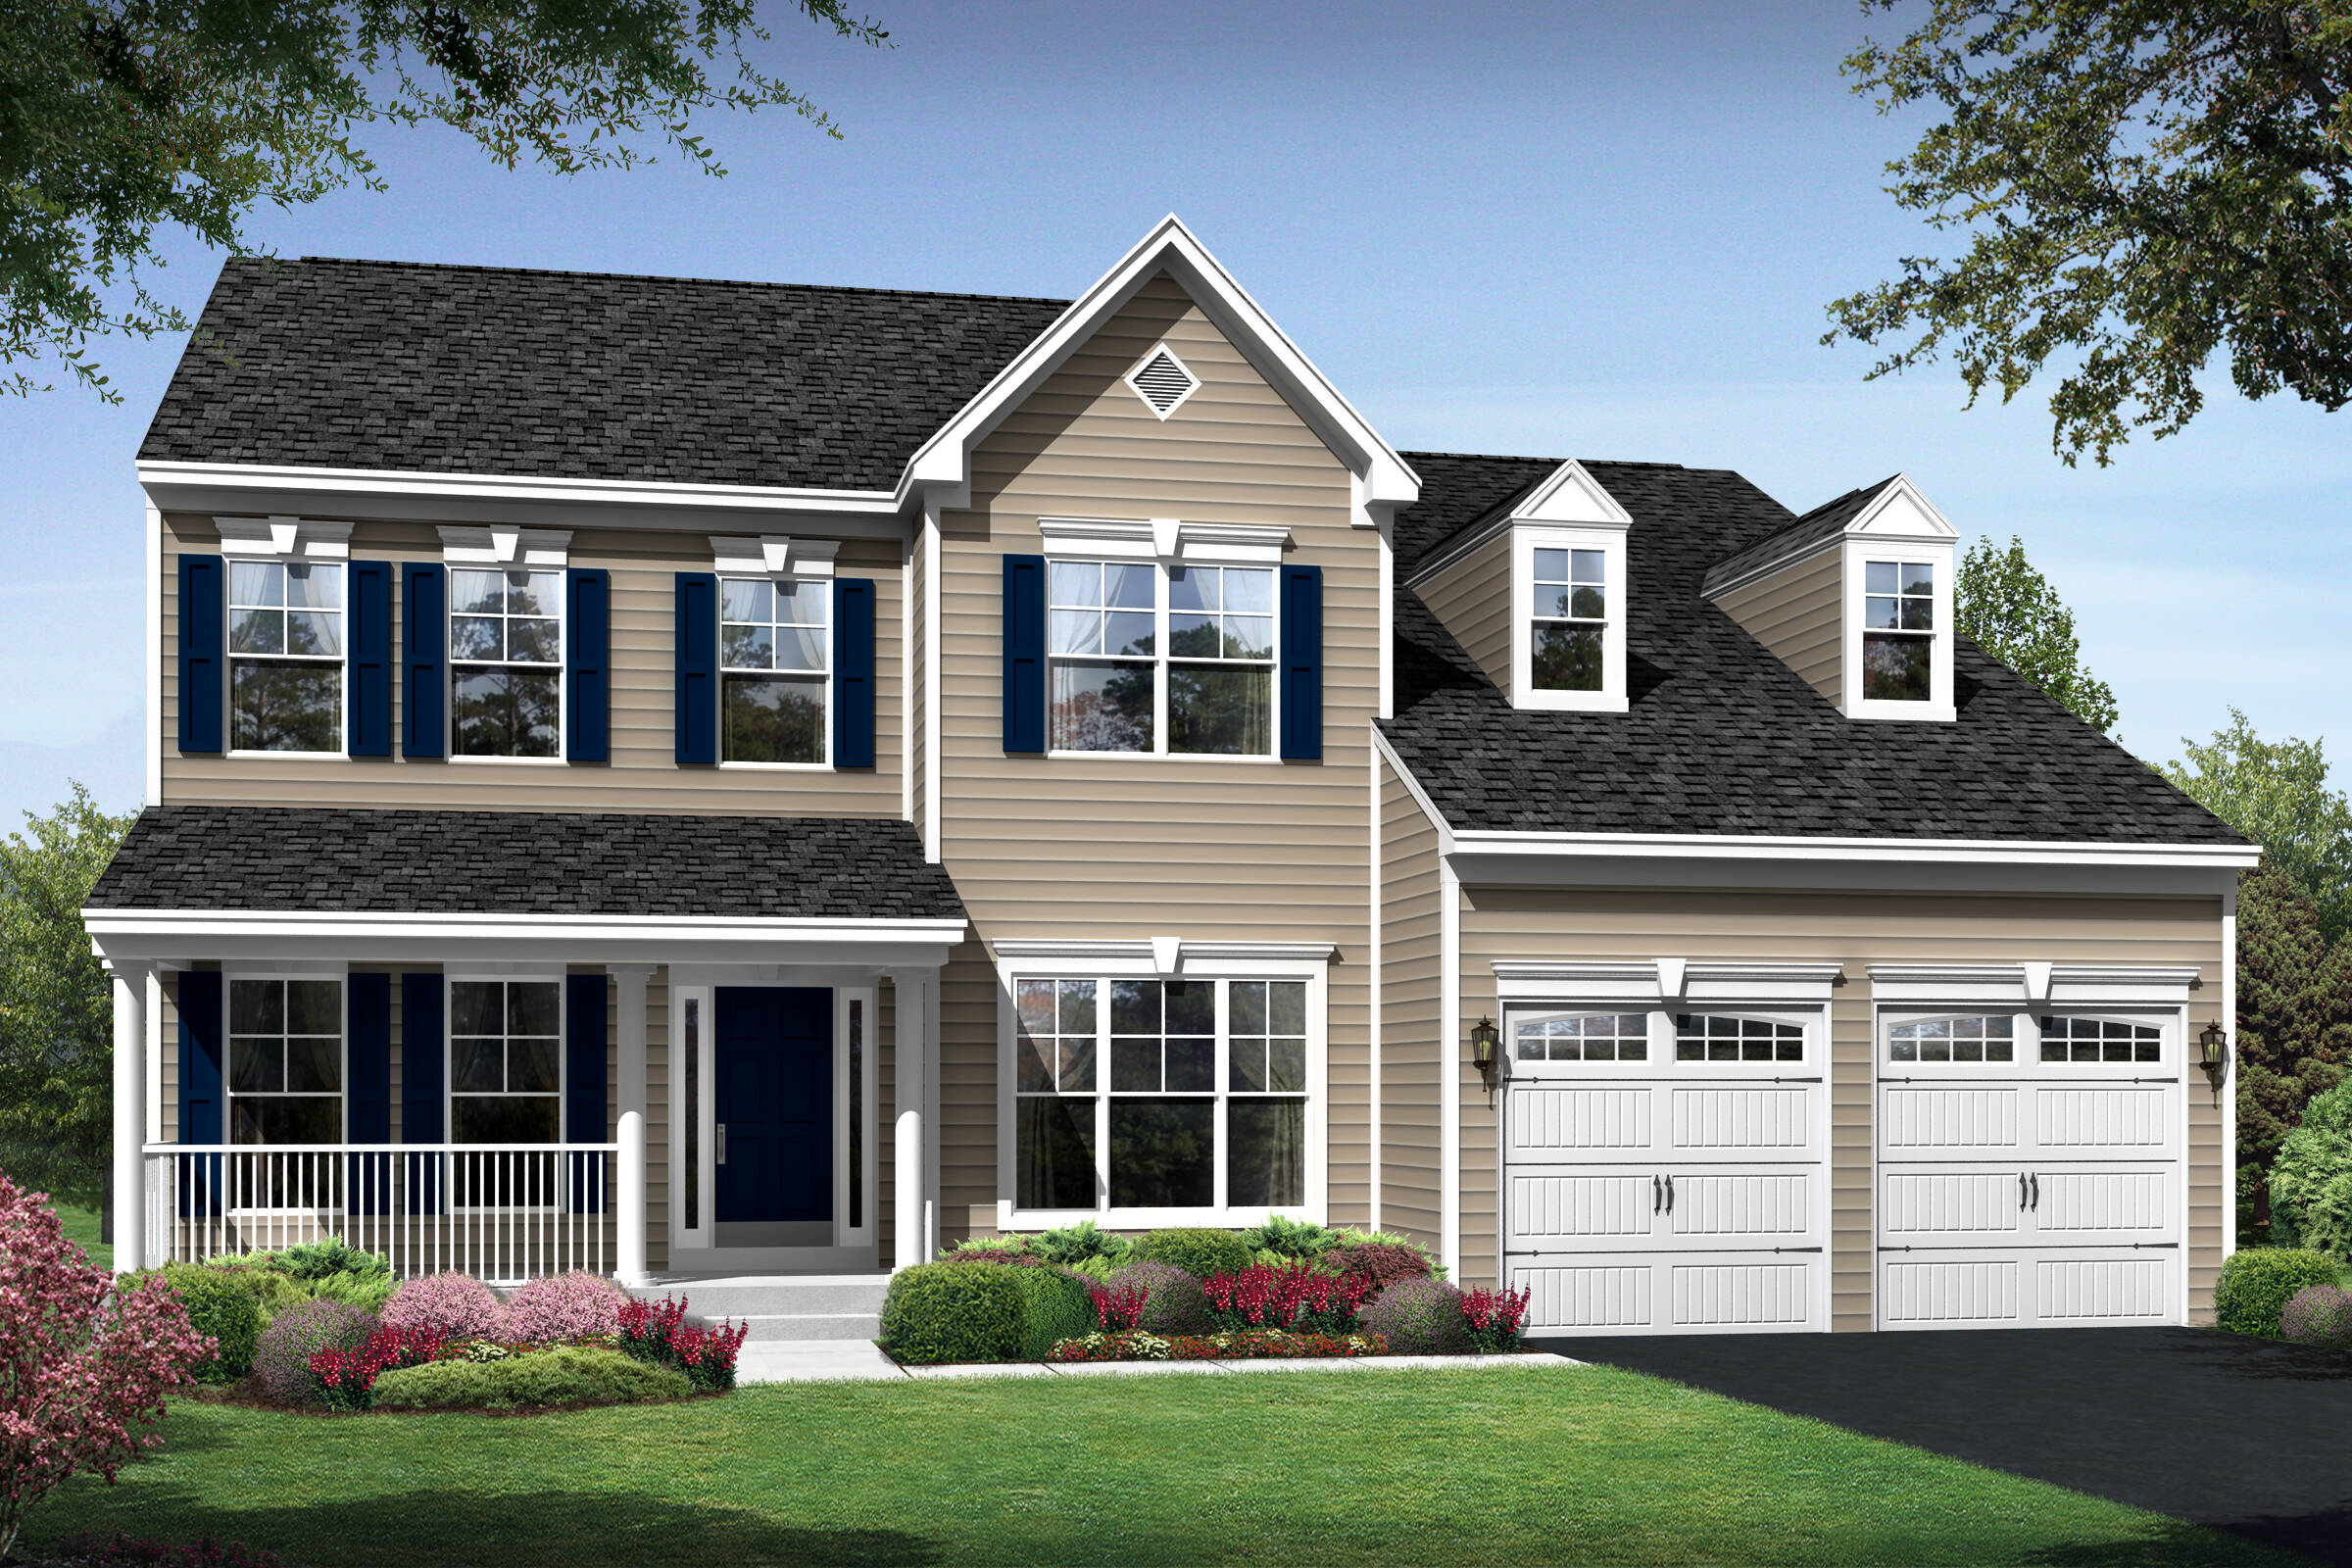 alaska country new homes at magness farm in maryland